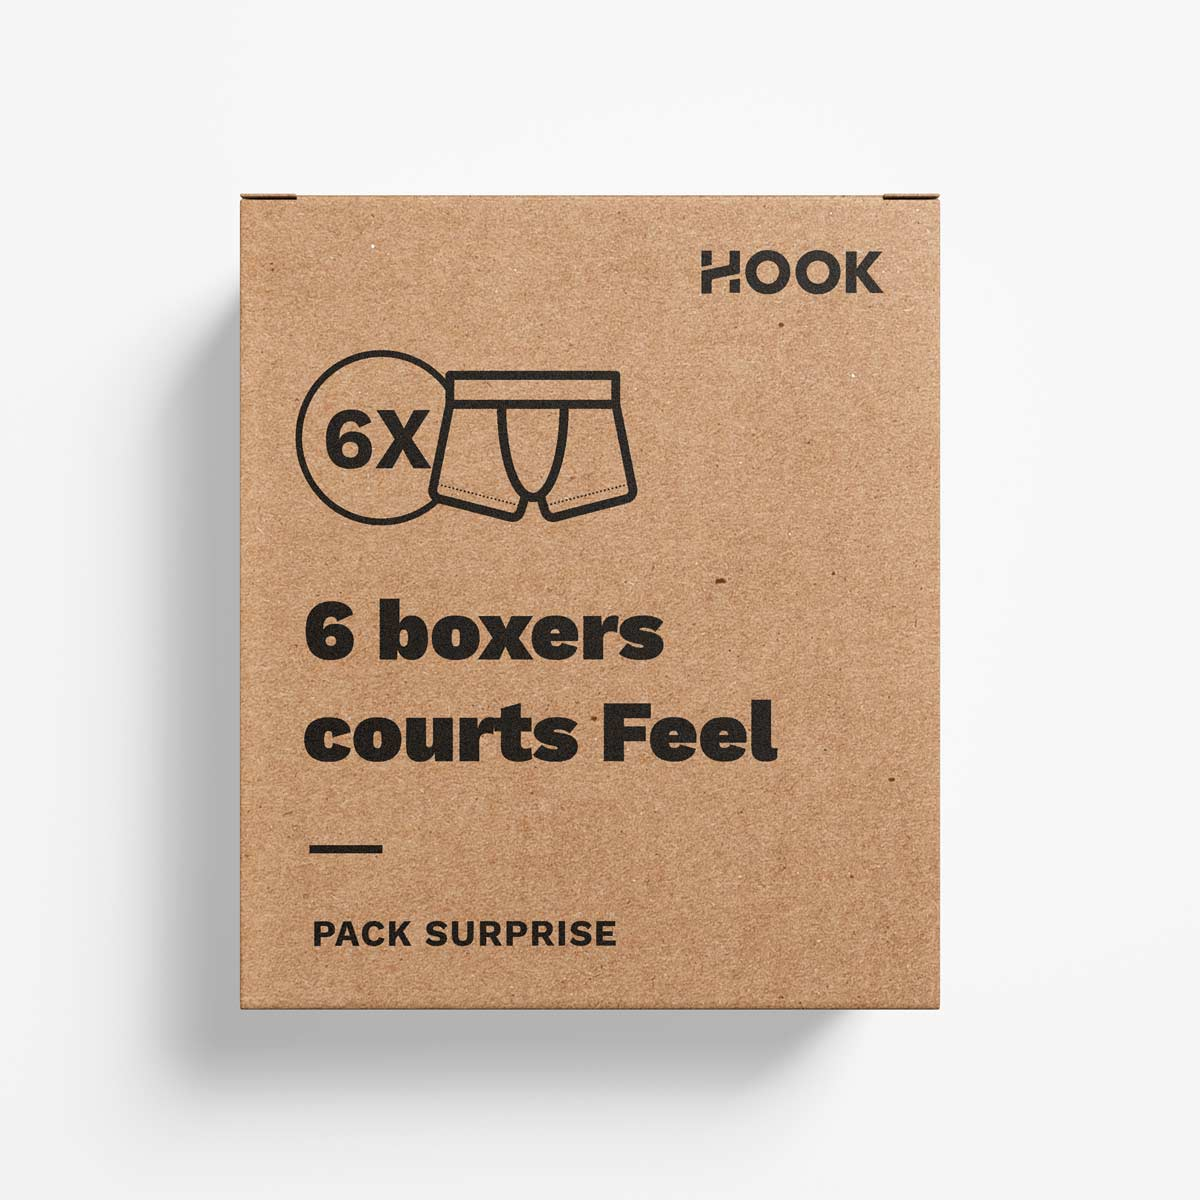 Boxer court Feel par Hook : pack de 6 boxers courts